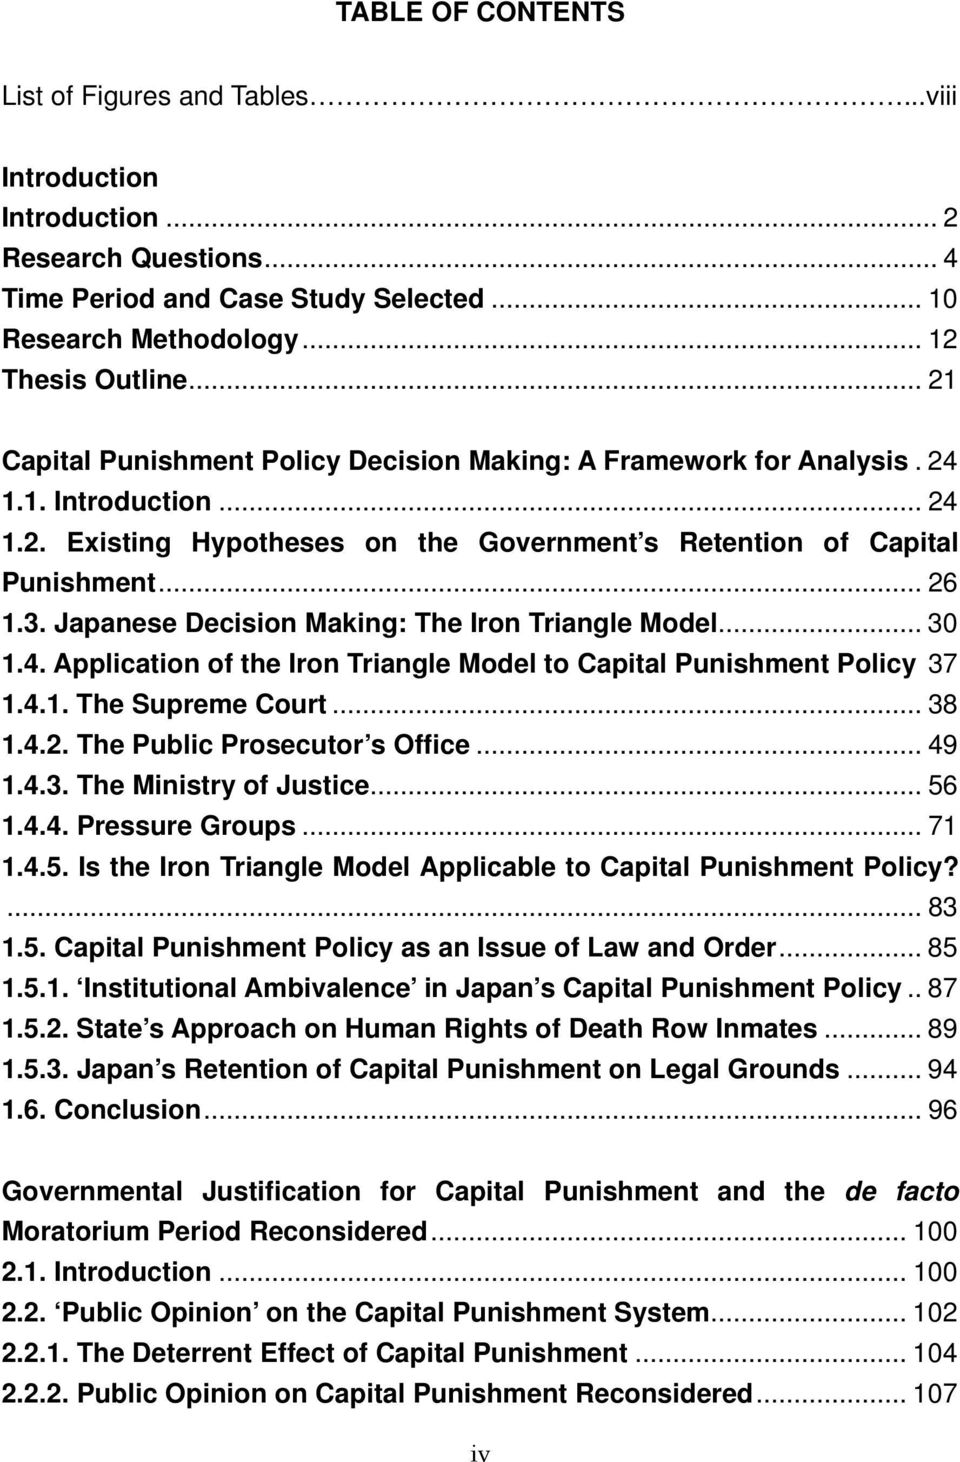 Japanese Decision Making: The Iron Triangle Model... 30 1.4. Application of the Iron Triangle Model to Capital Punishment Policy 37 1.4.1. The Supreme Court... 38 1.4.2.